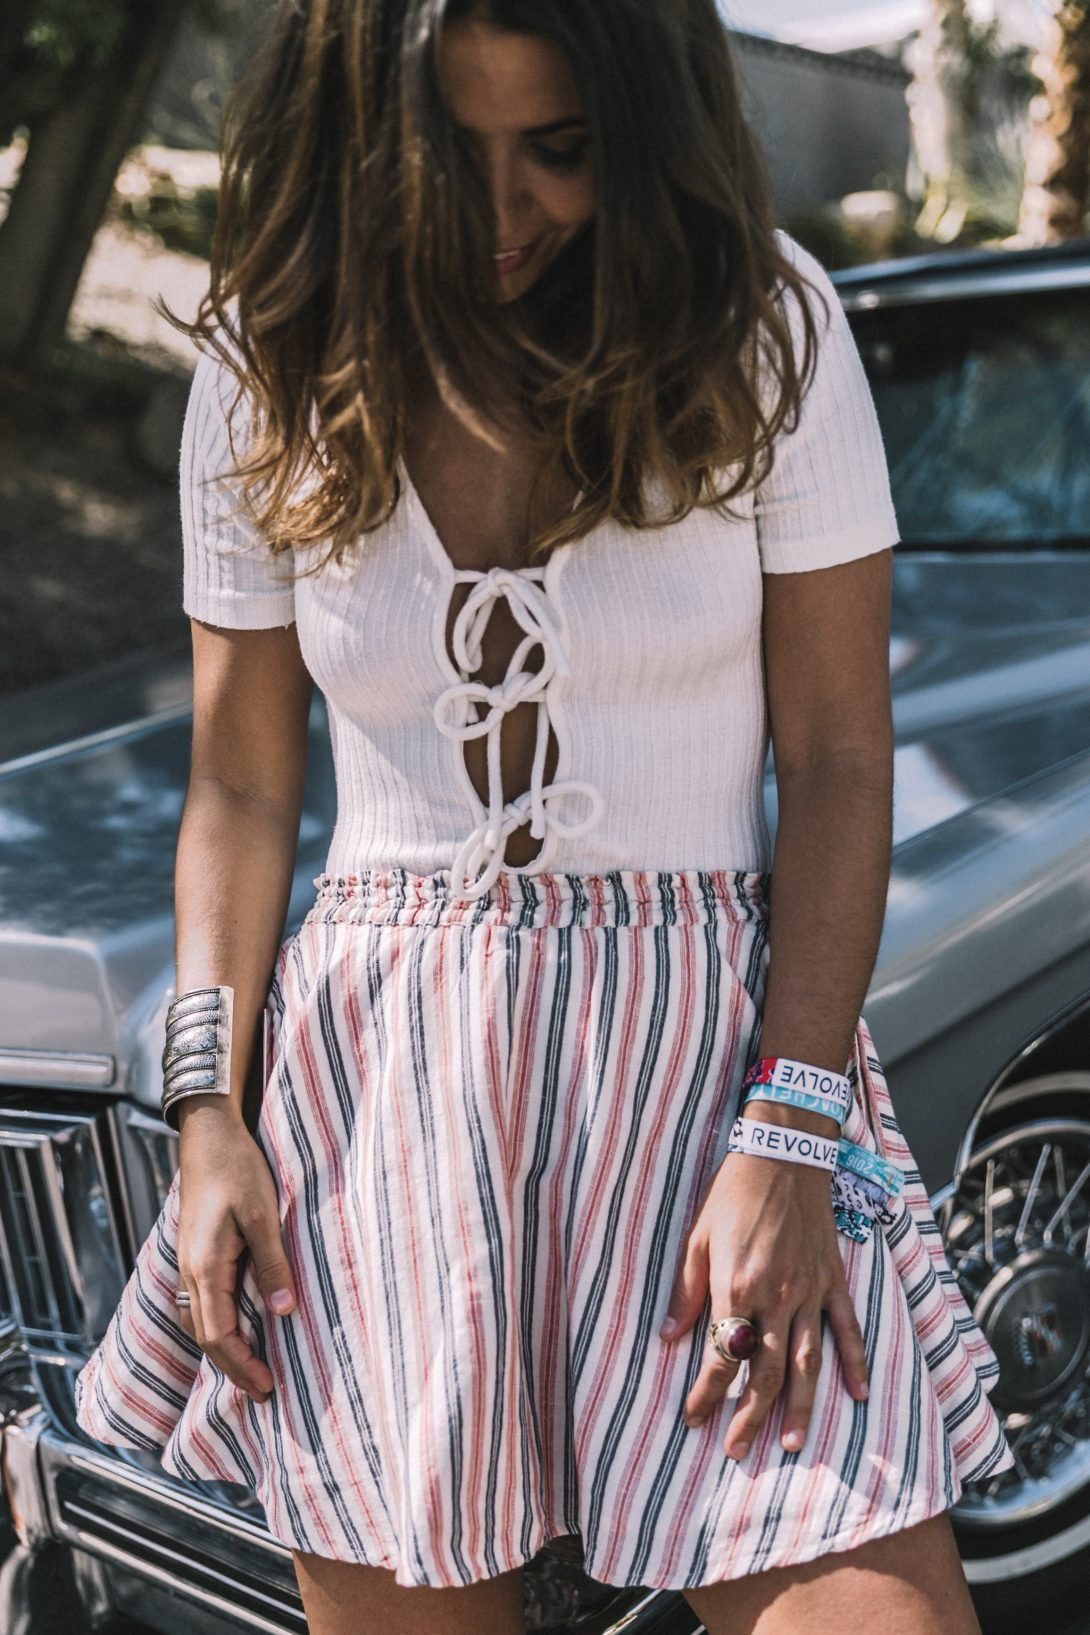 Lace_Up_Body-Privacy_Please-Revolve_Clothing-Striped_Mini_Skirt-Soludos_Espadrilles-Palm_Springs-Outfit-Collage_Vintage-9